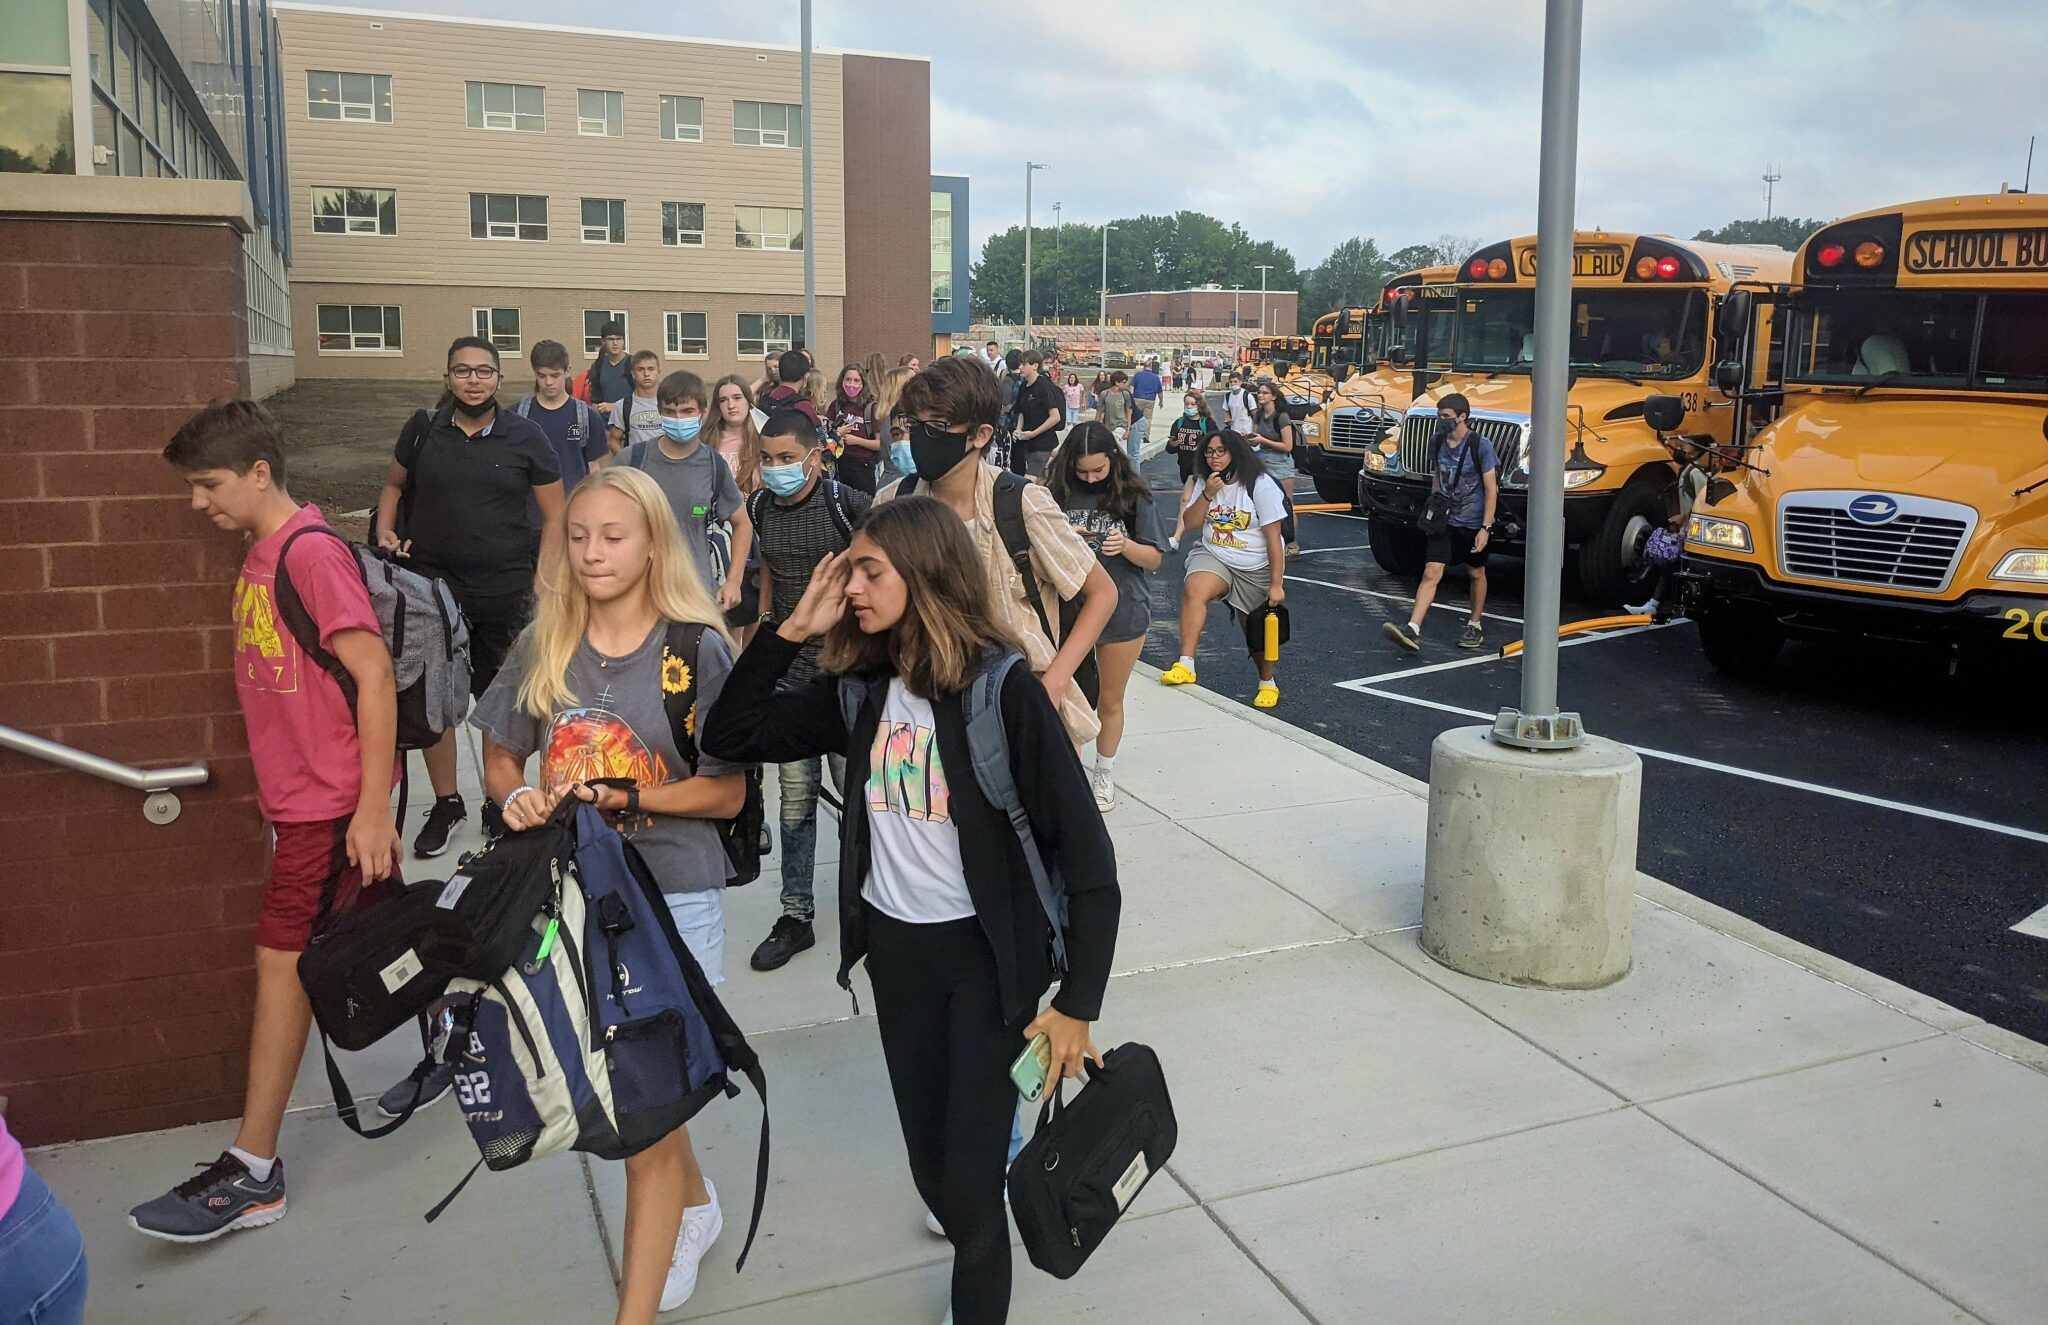 Students enter the high school